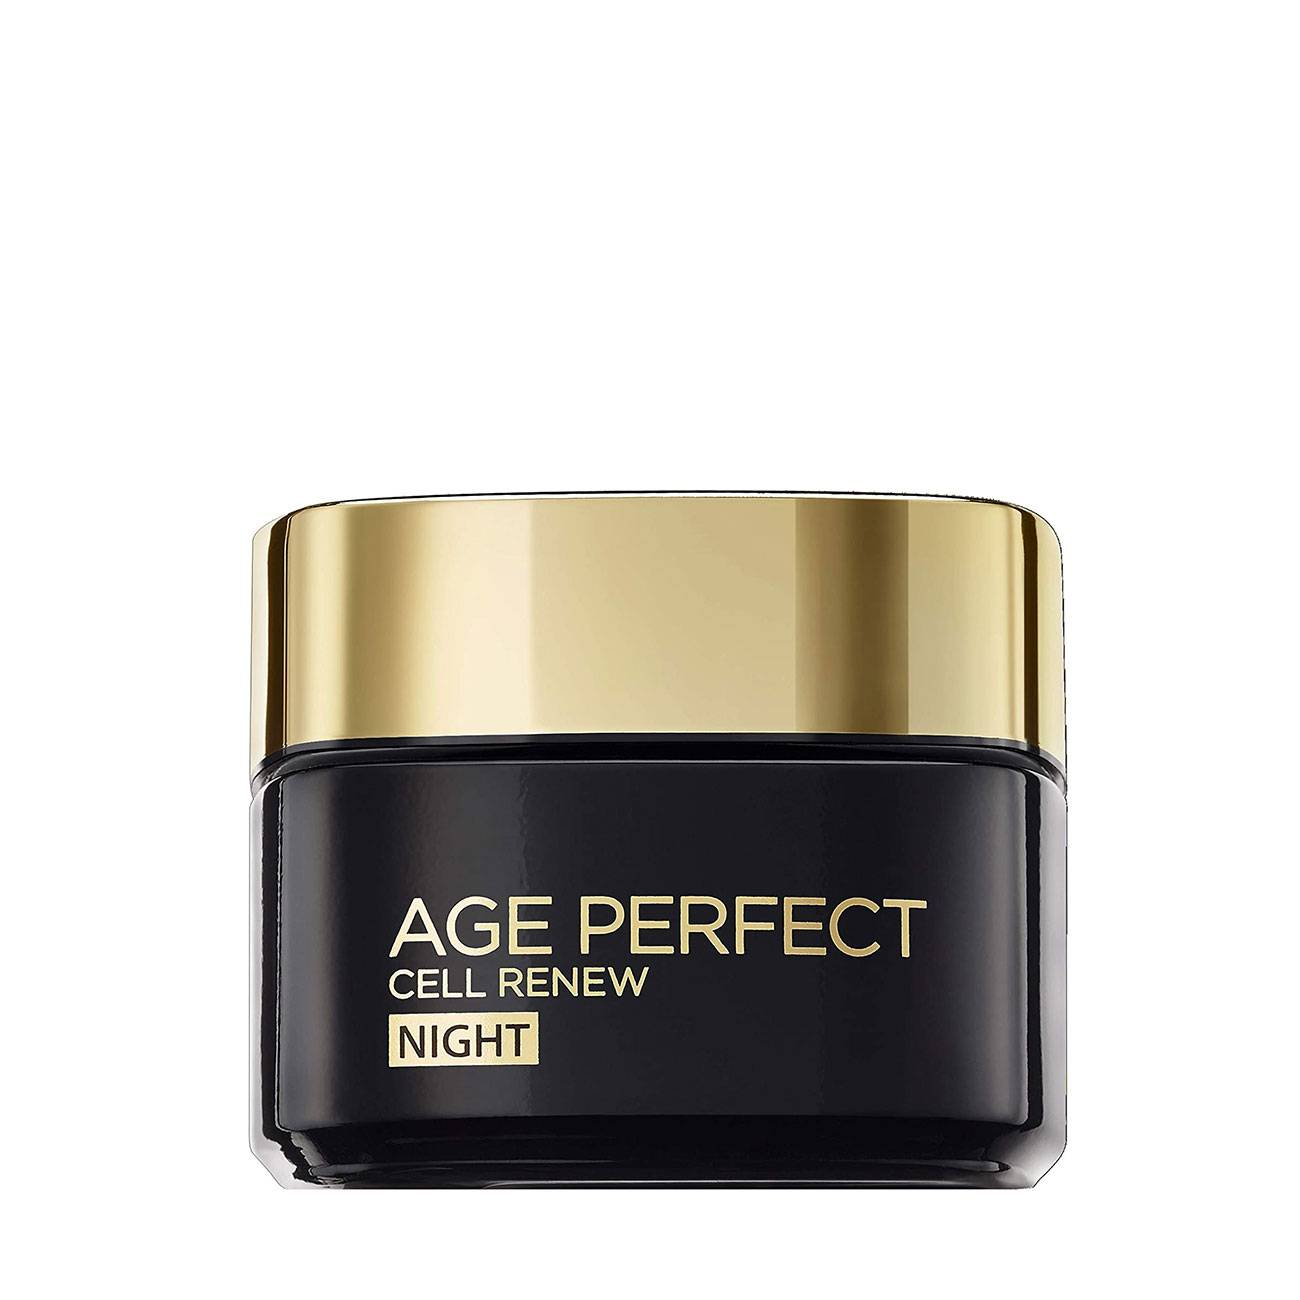 Age Perfect Cell Renew Night 50ml